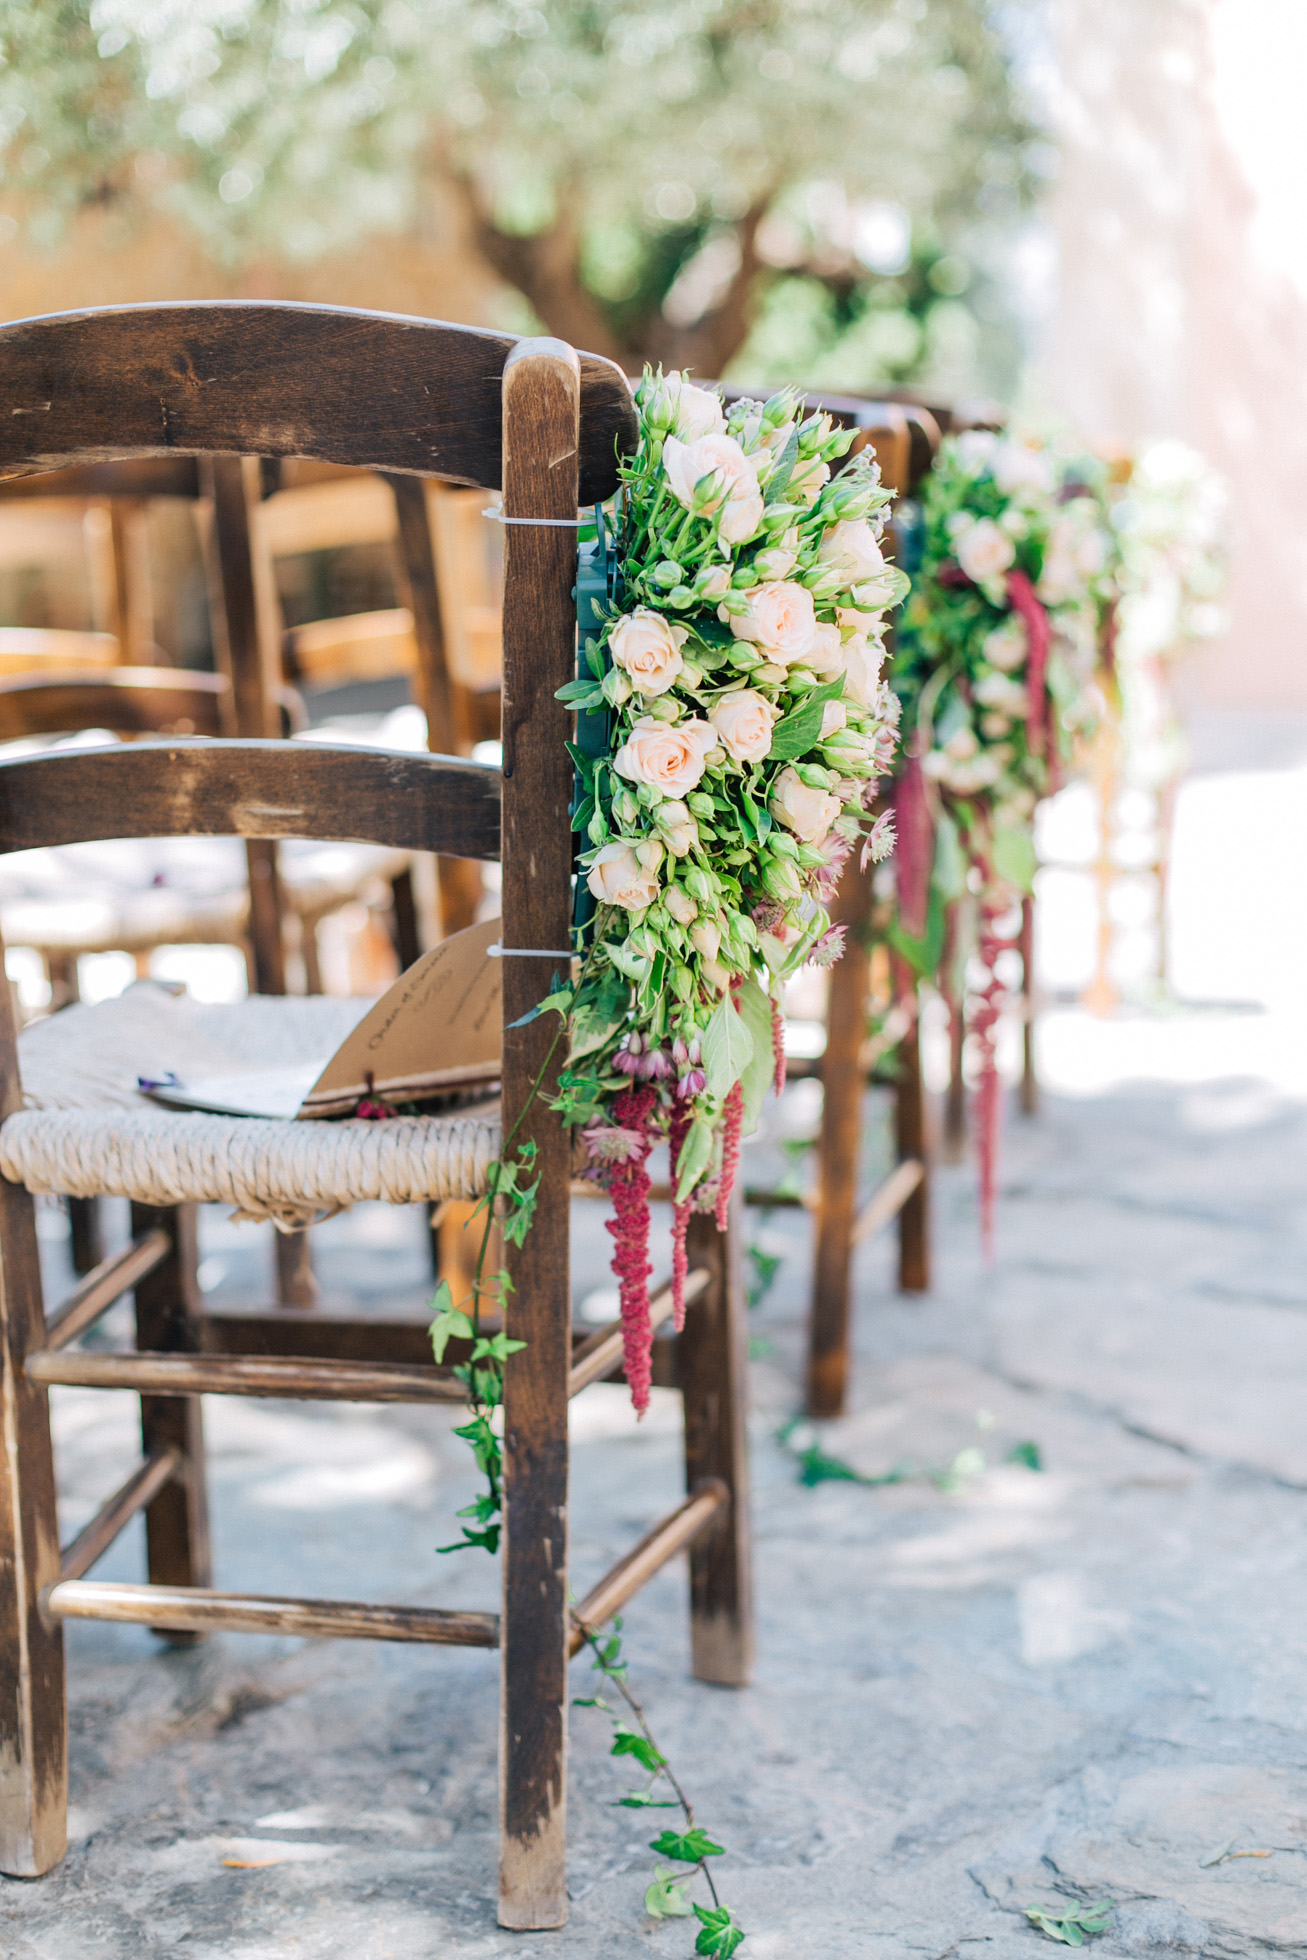 Ceremony venue with decorations and florals ready for a destination wedding in Grecotel Agreco Farm in Crete, Greece, documented by professional wedding photographer.